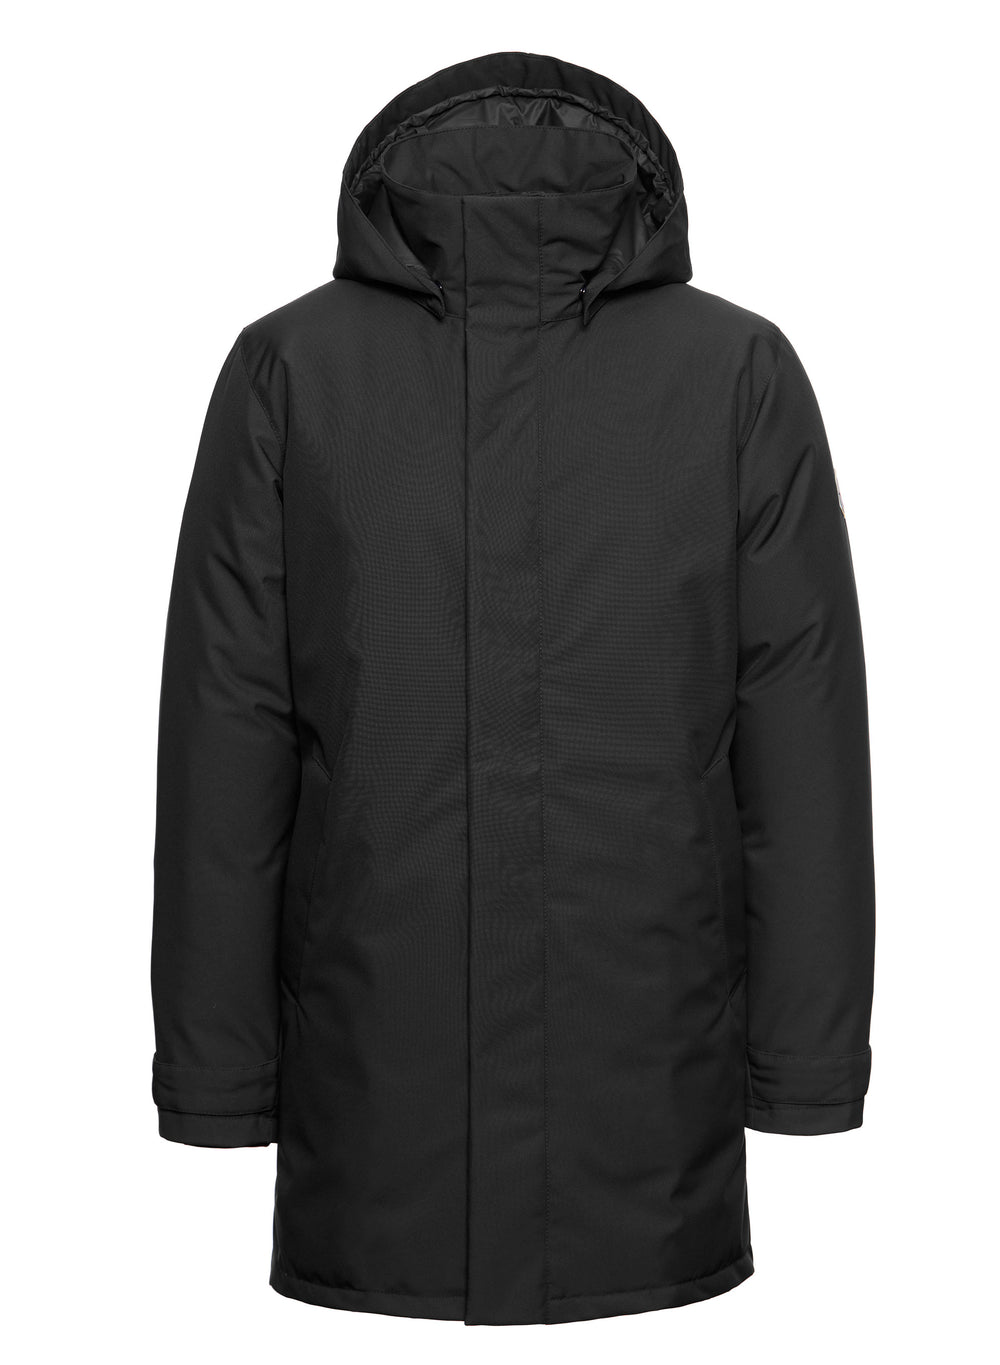 Quartz Co. Labrador Parka - Men's